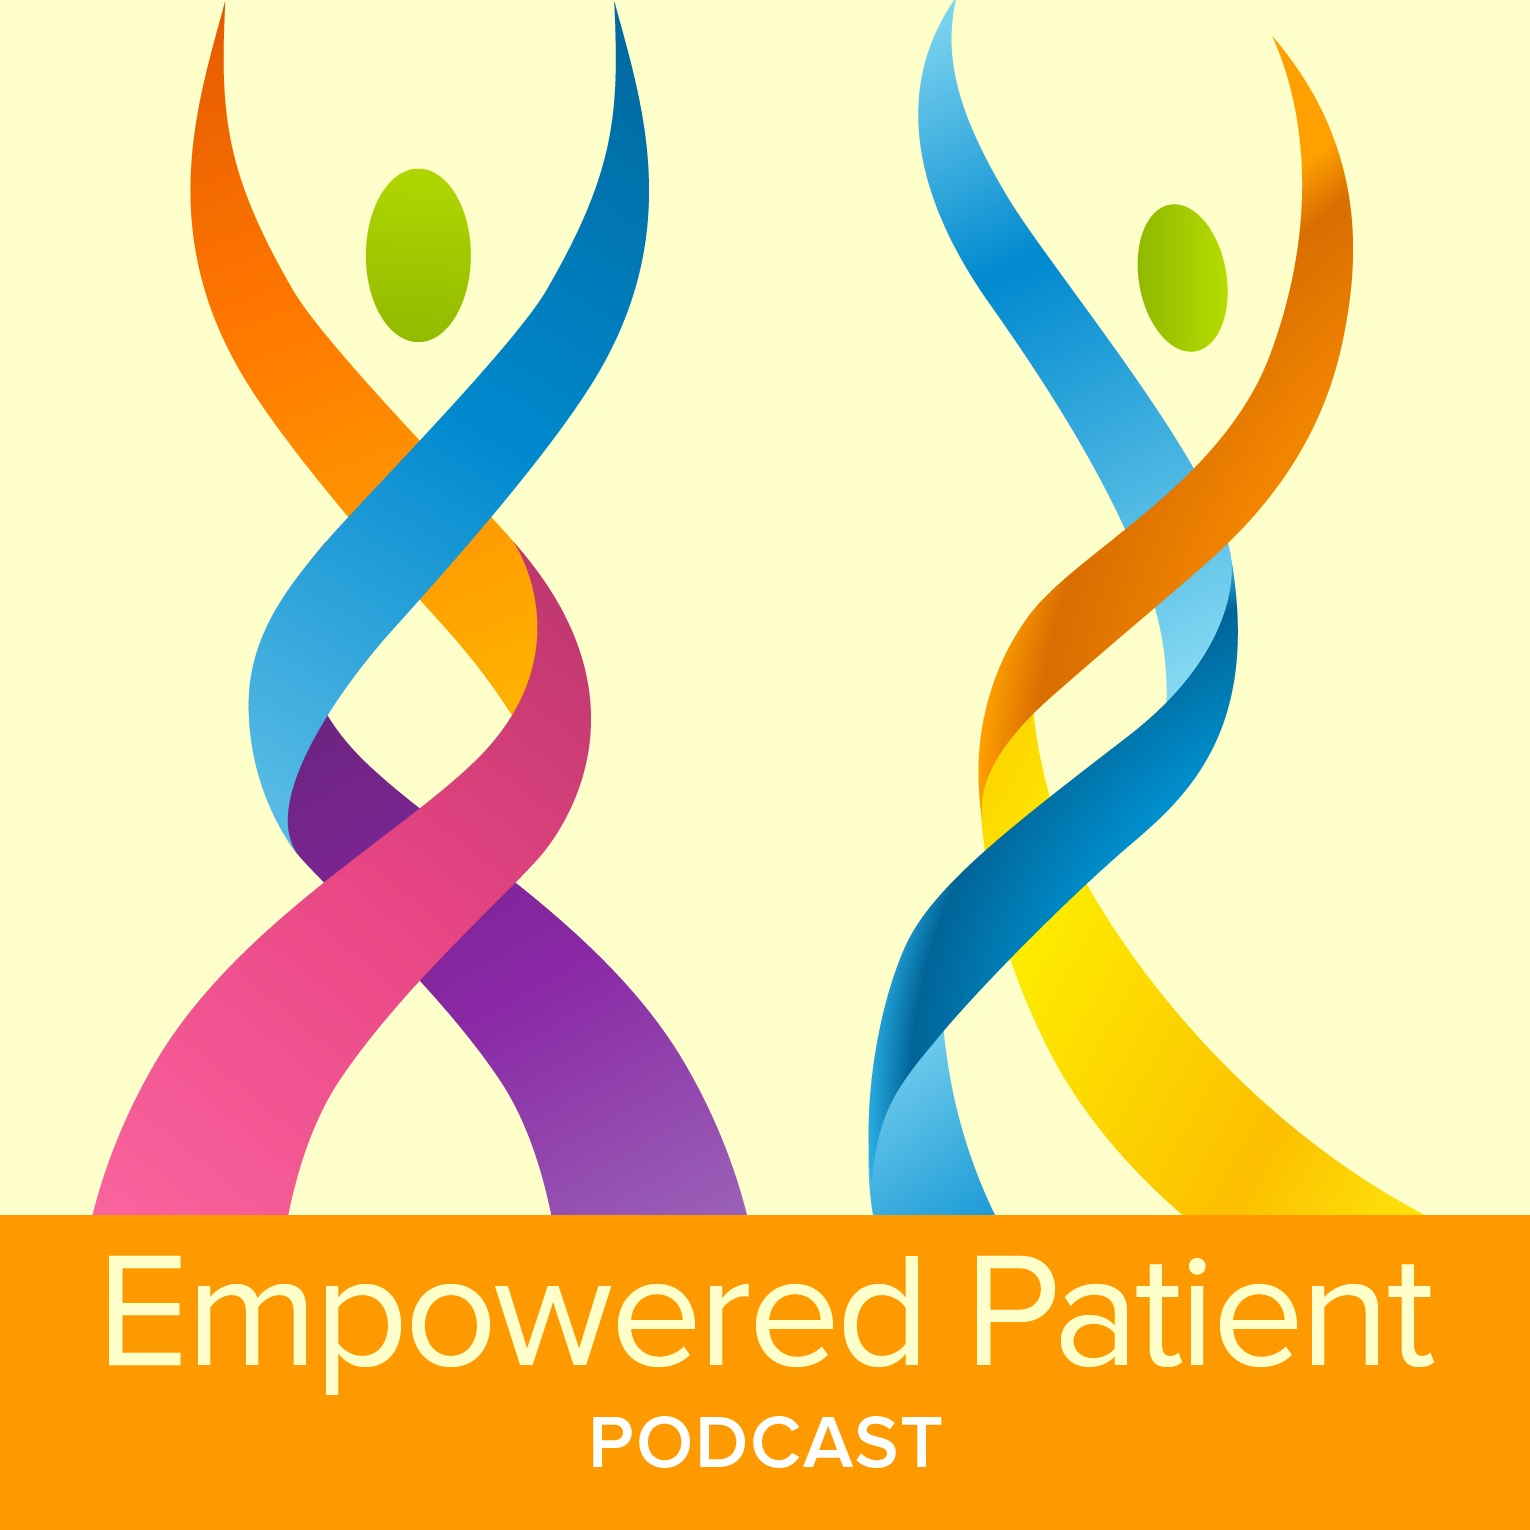 Empowered Patient Podcast show art